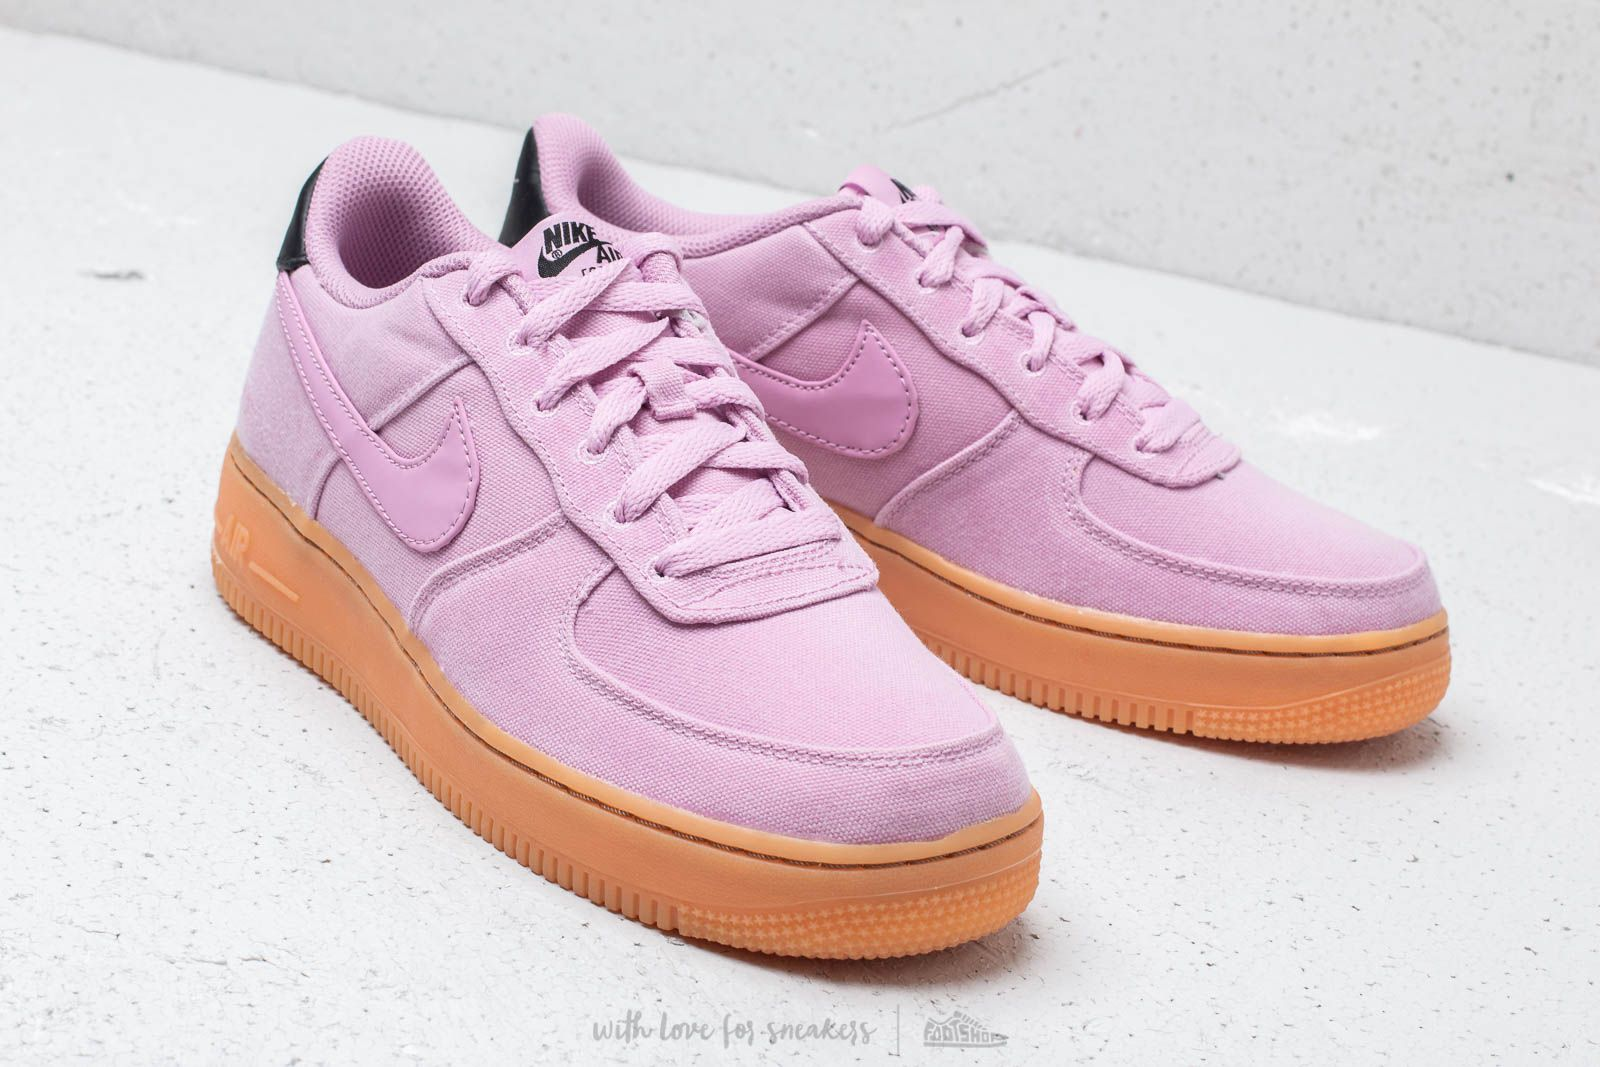 concierto Trágico niña  Women's shoes Nike Air Force 1 LV8 Style (GS) Lt Arctic Pink/ Lt Arctic Pink  | Footshop